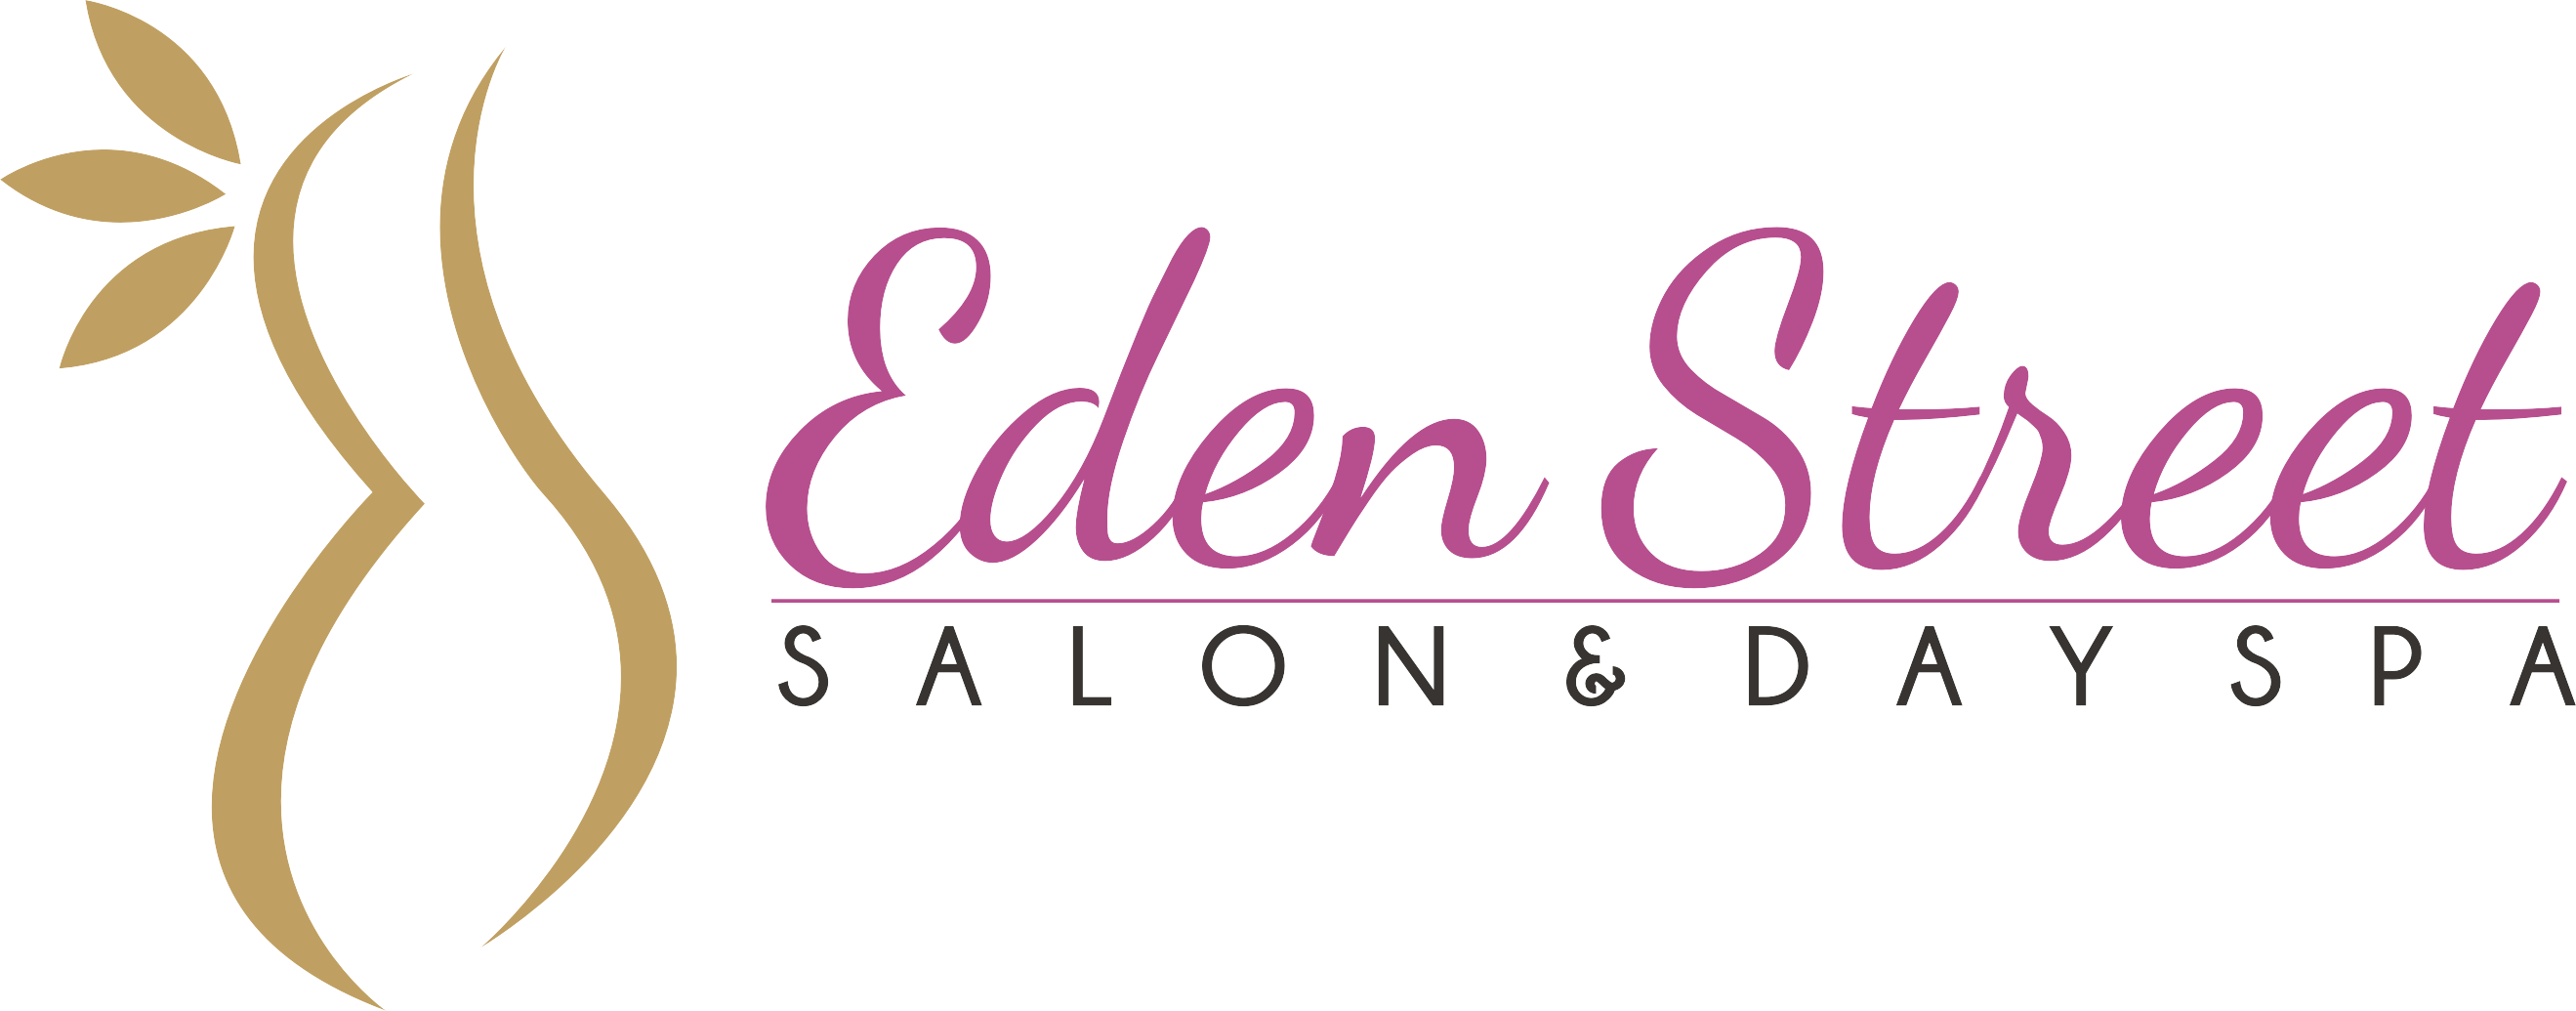 Eden Street Salon & Day Spa